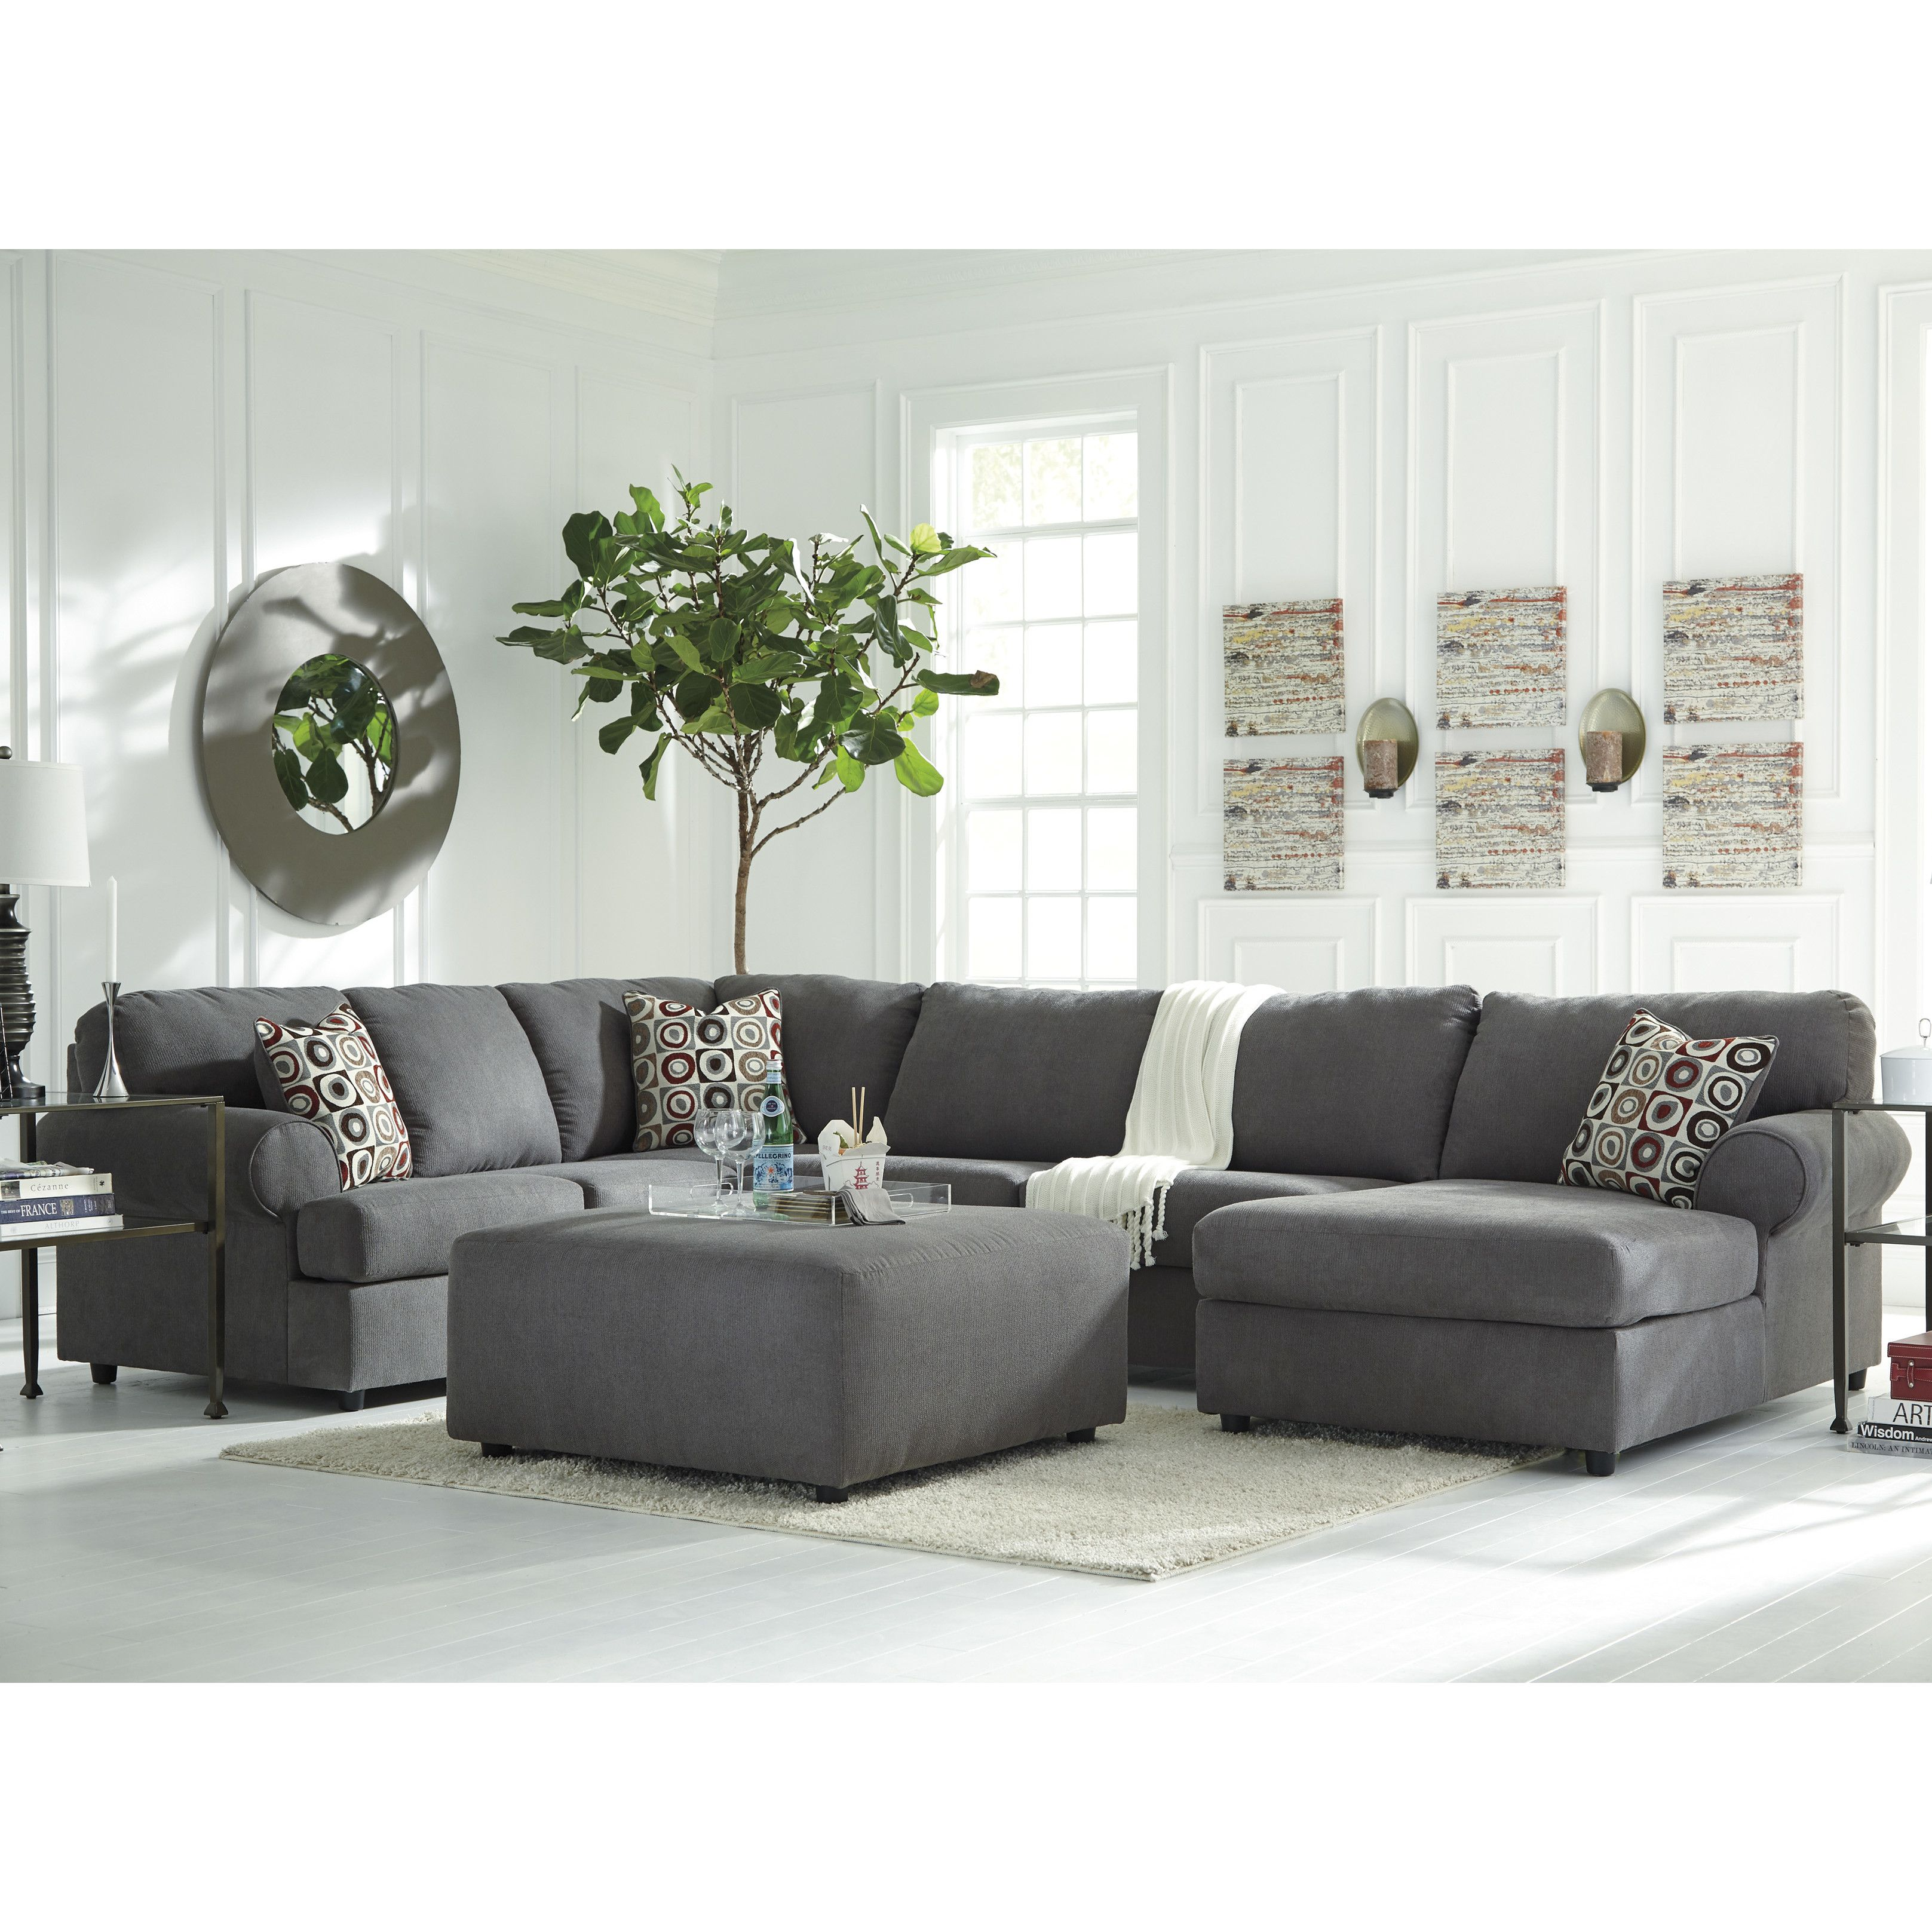 Andover Mills Sellersville Sectional sectional